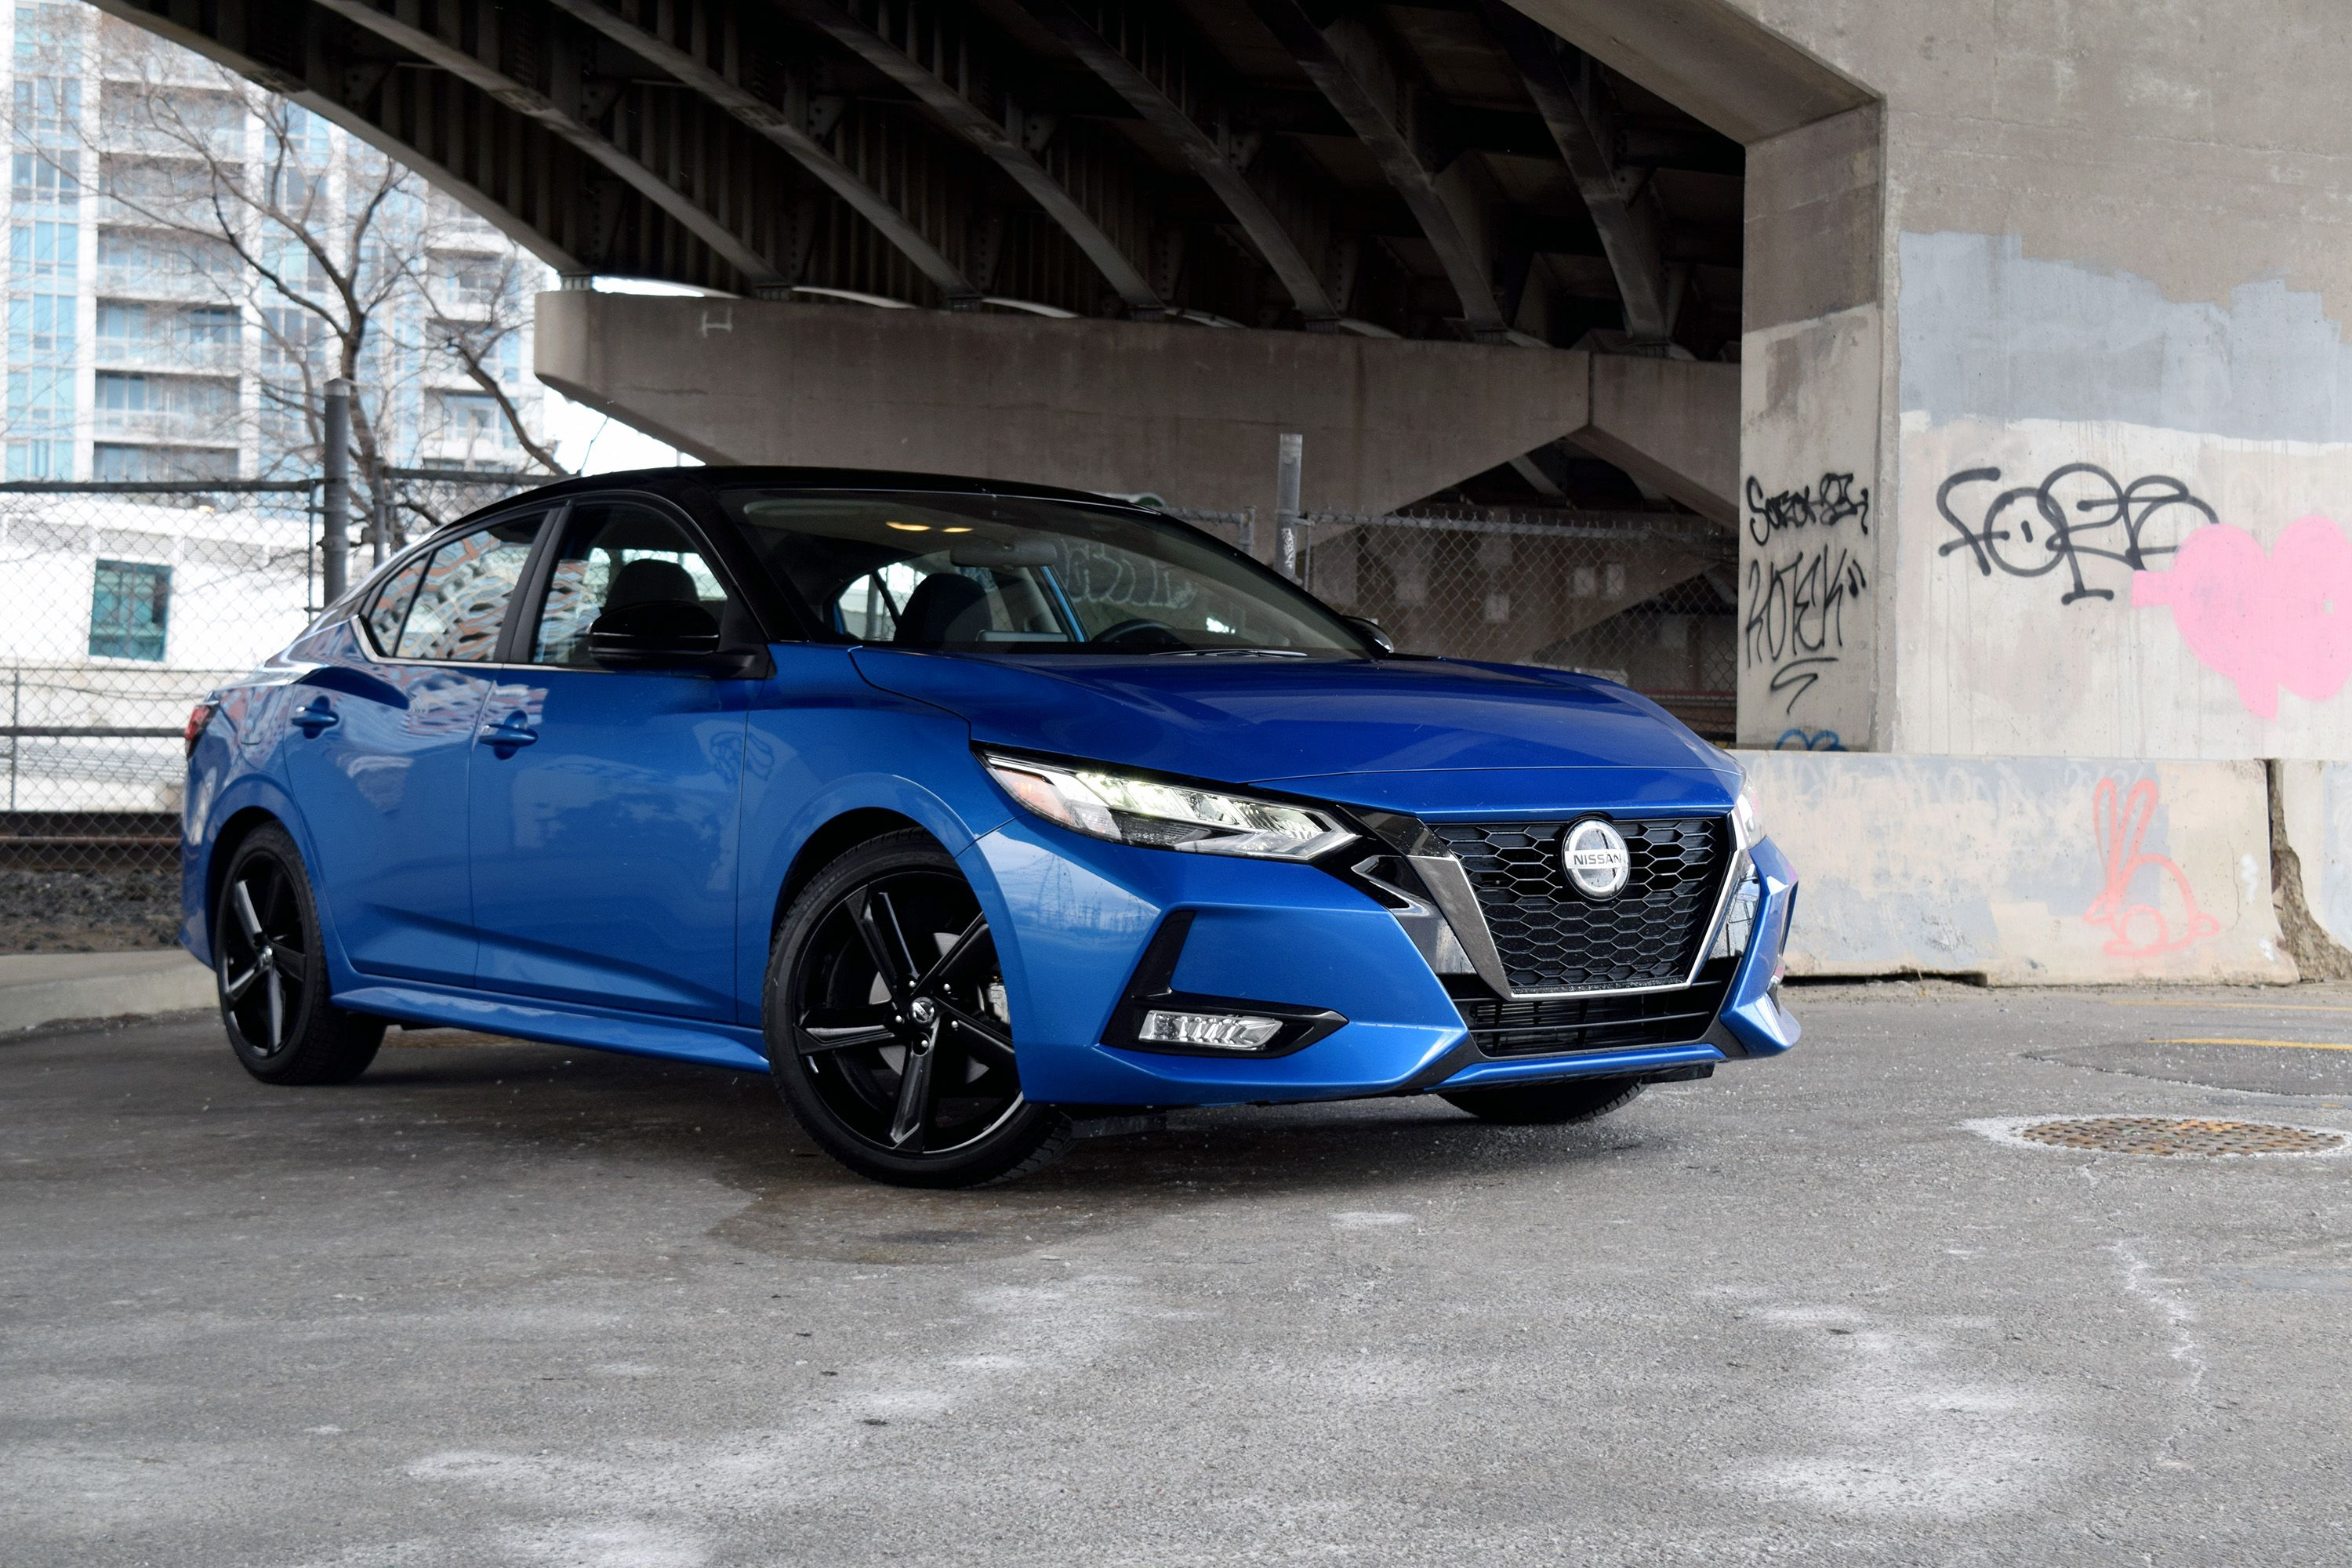 2021 Nissan Sentra Review - Exterior - Front 3Q Angle 2